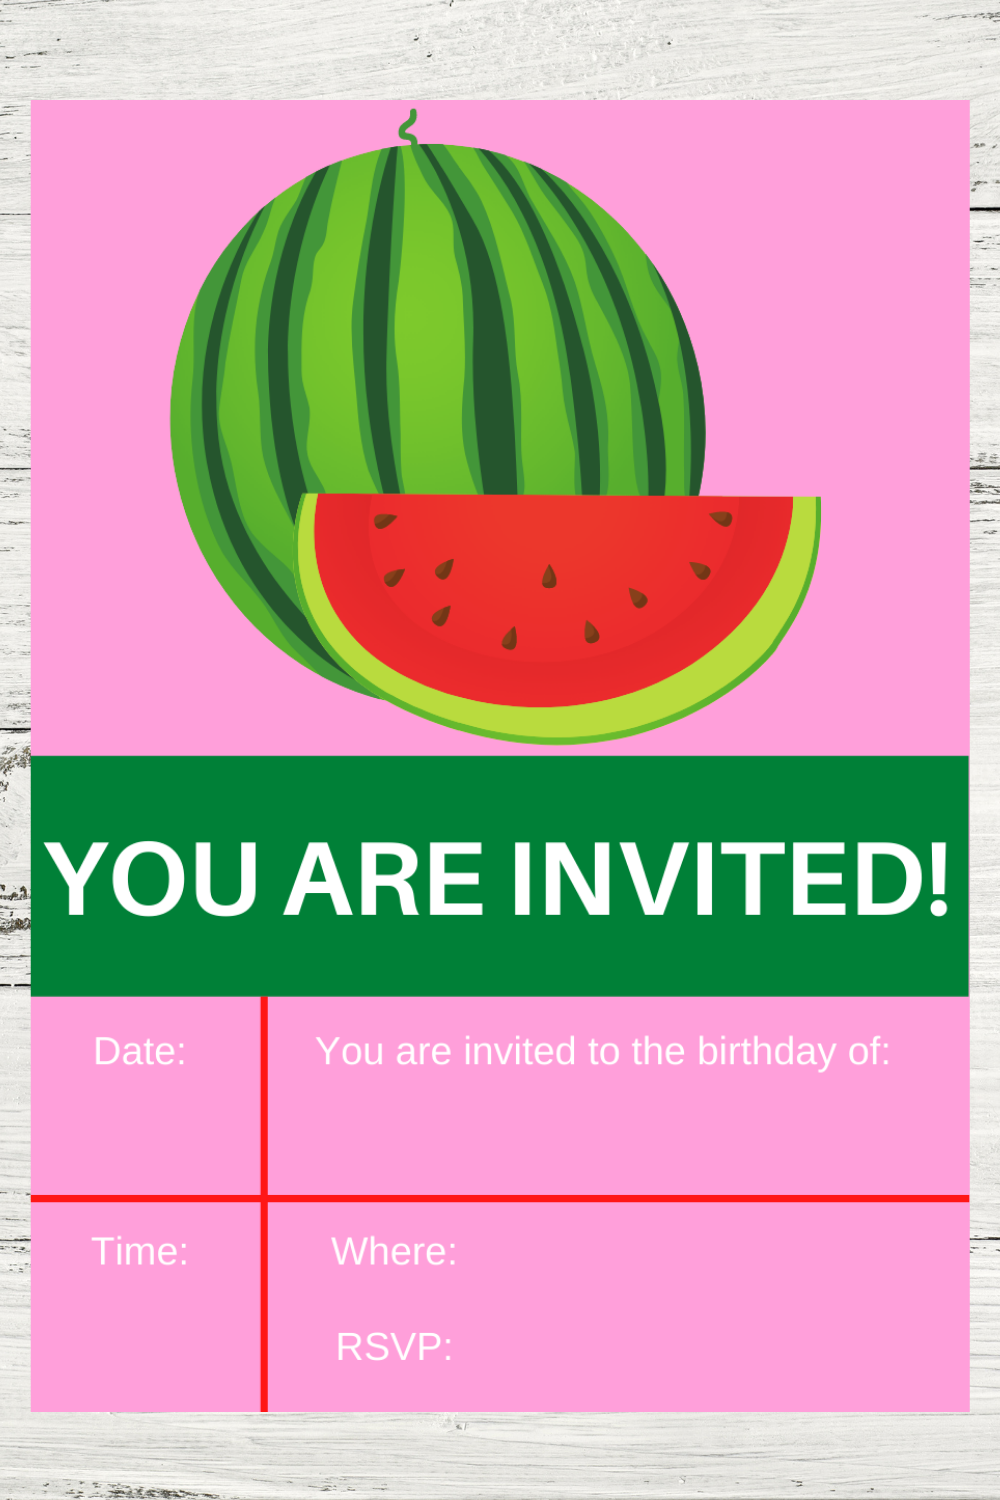 free download: watermelon birthday party invitations